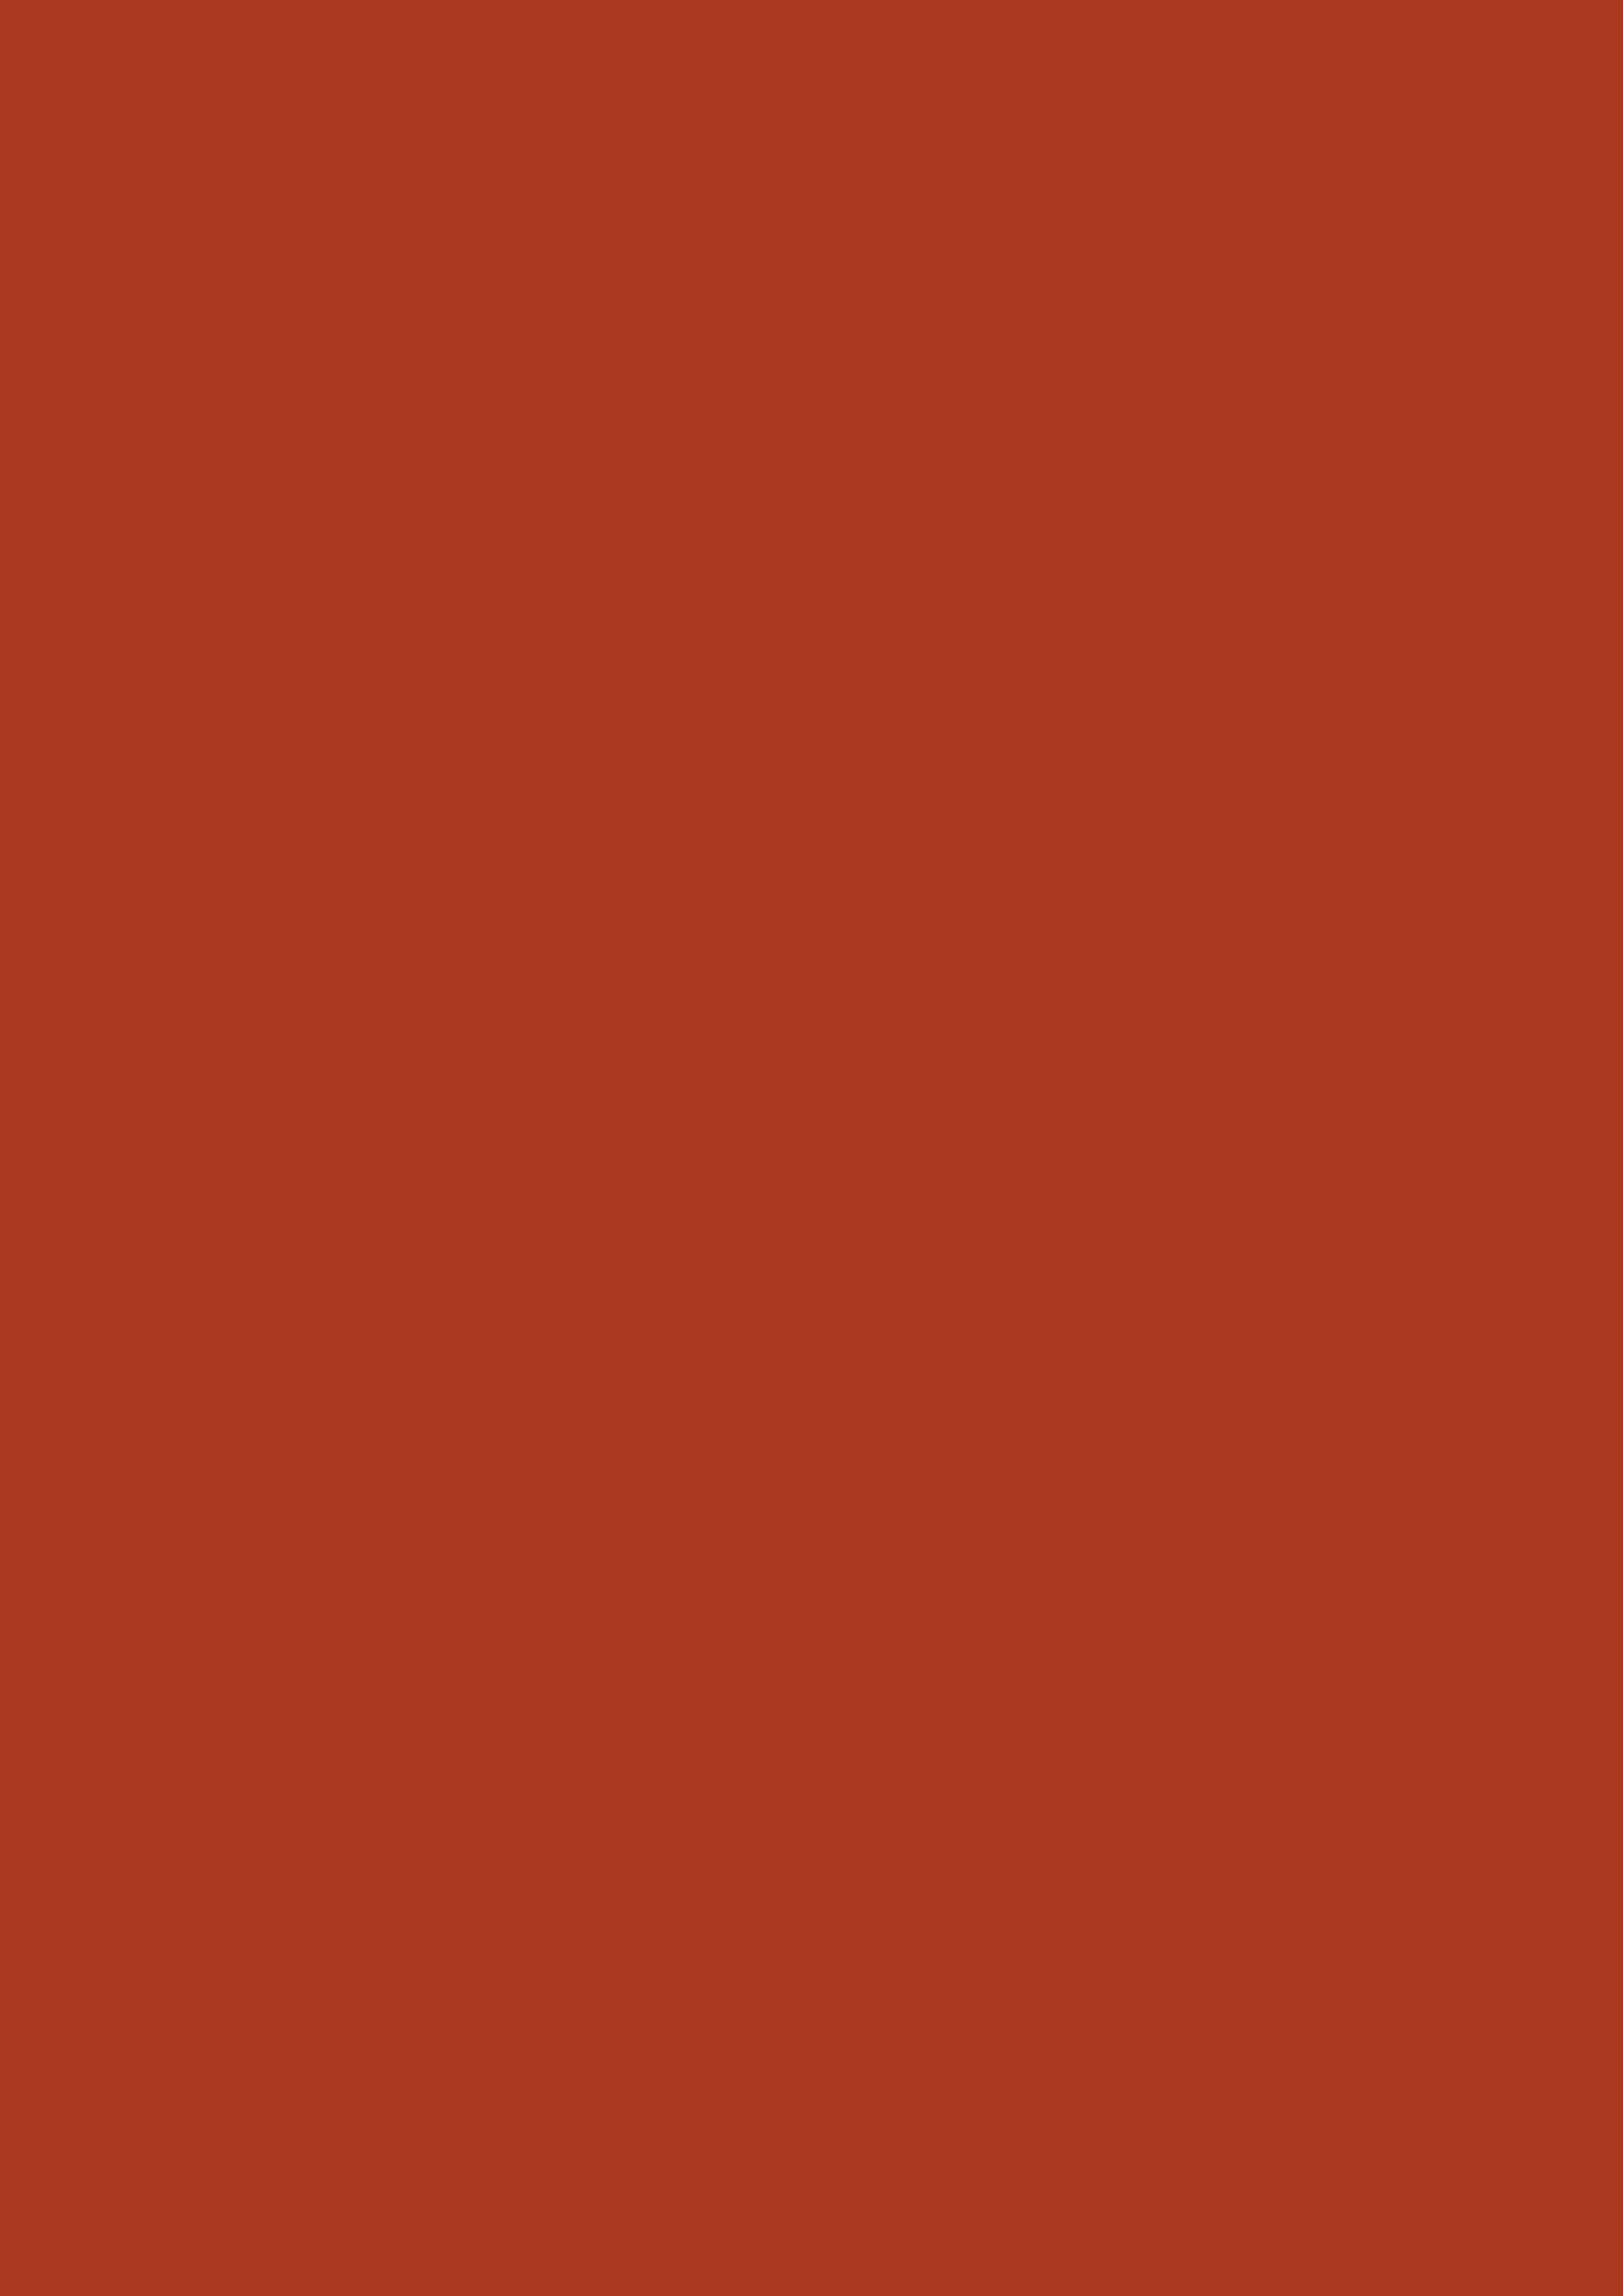 2480x3508 Chinese Red Solid Color Background